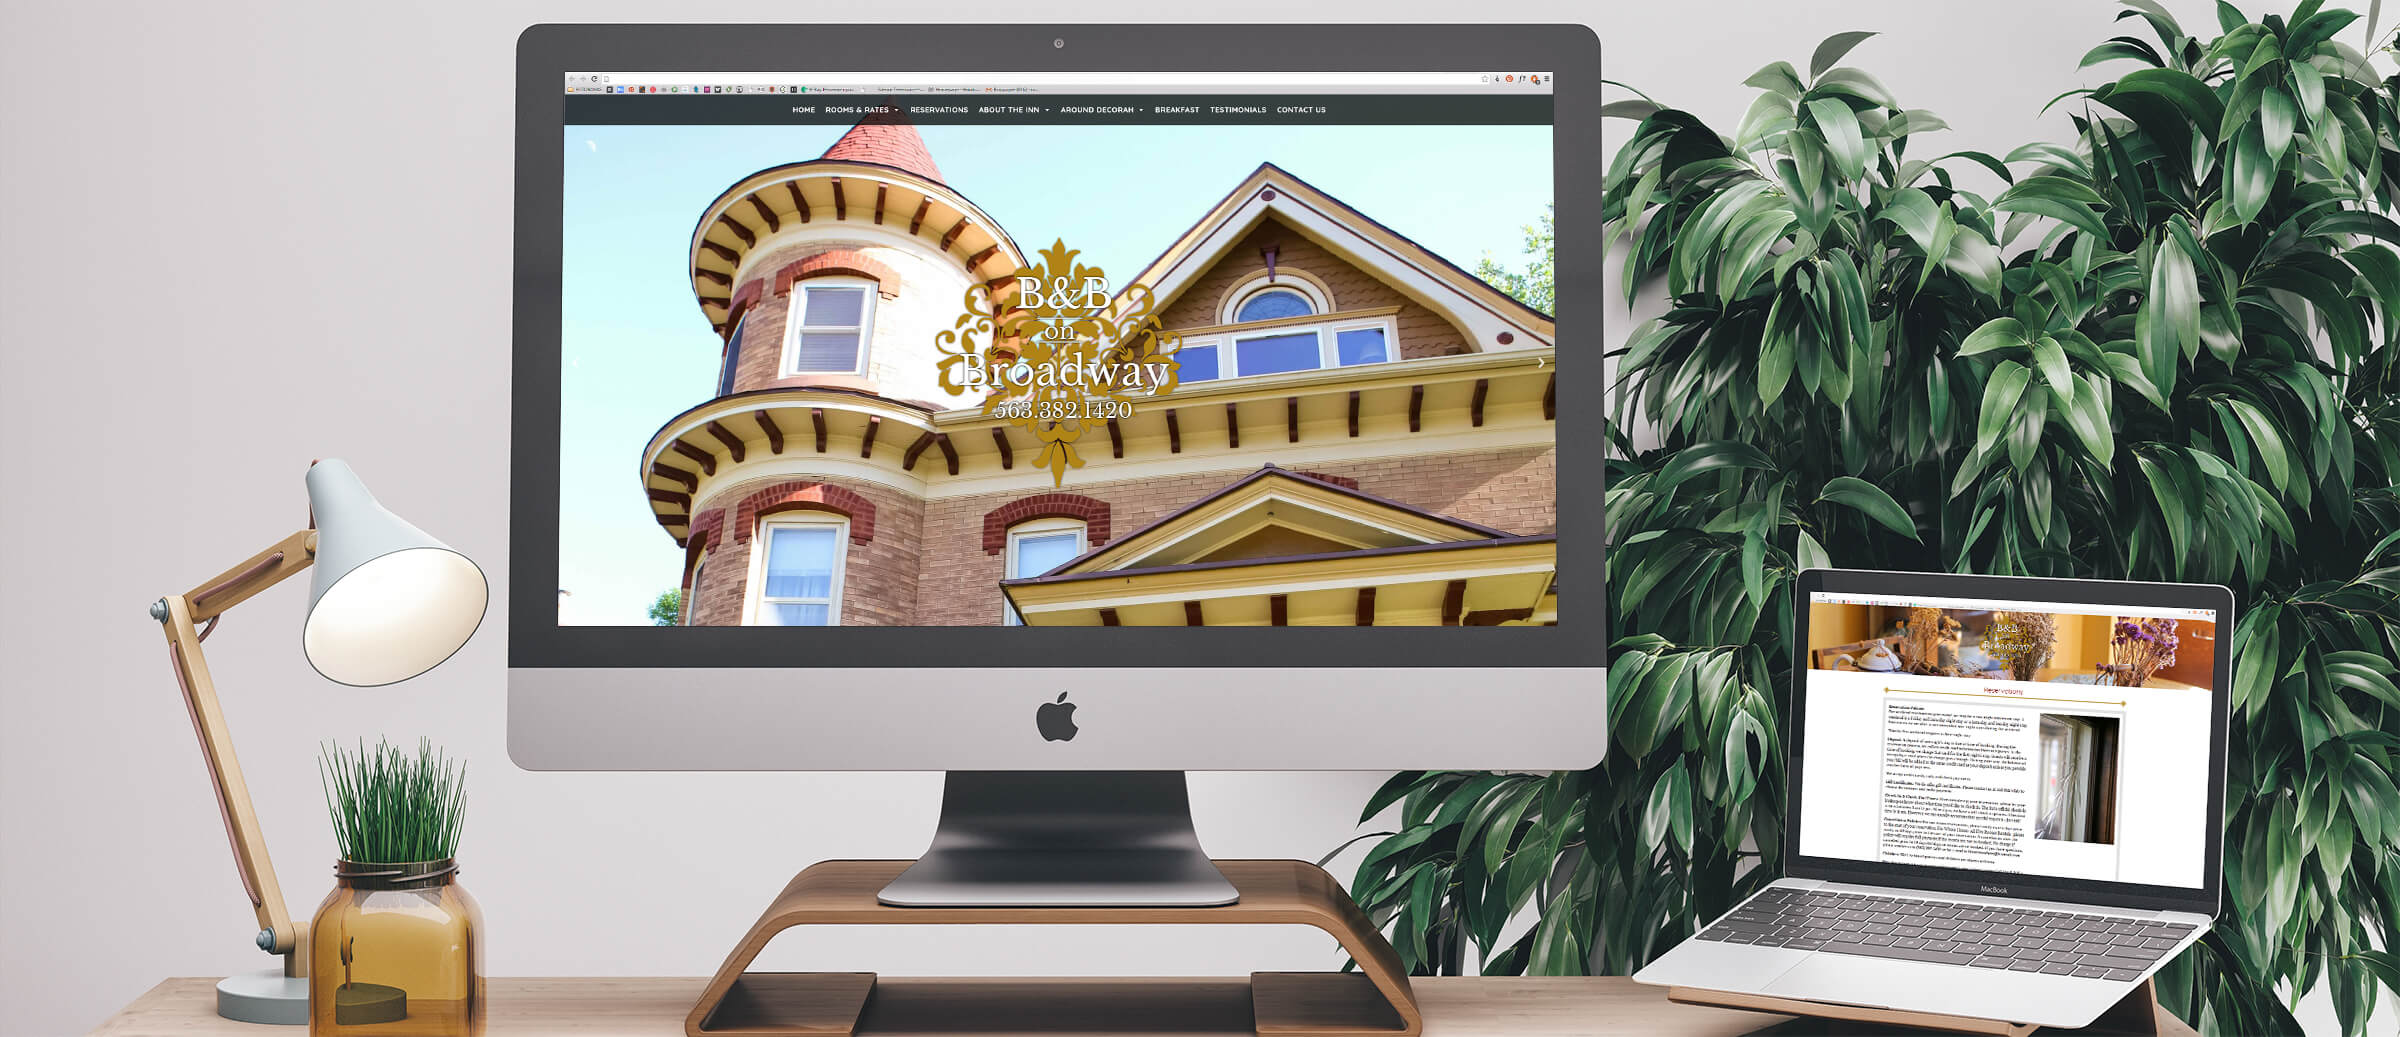 B&B on Broadway's website on computer and laptop